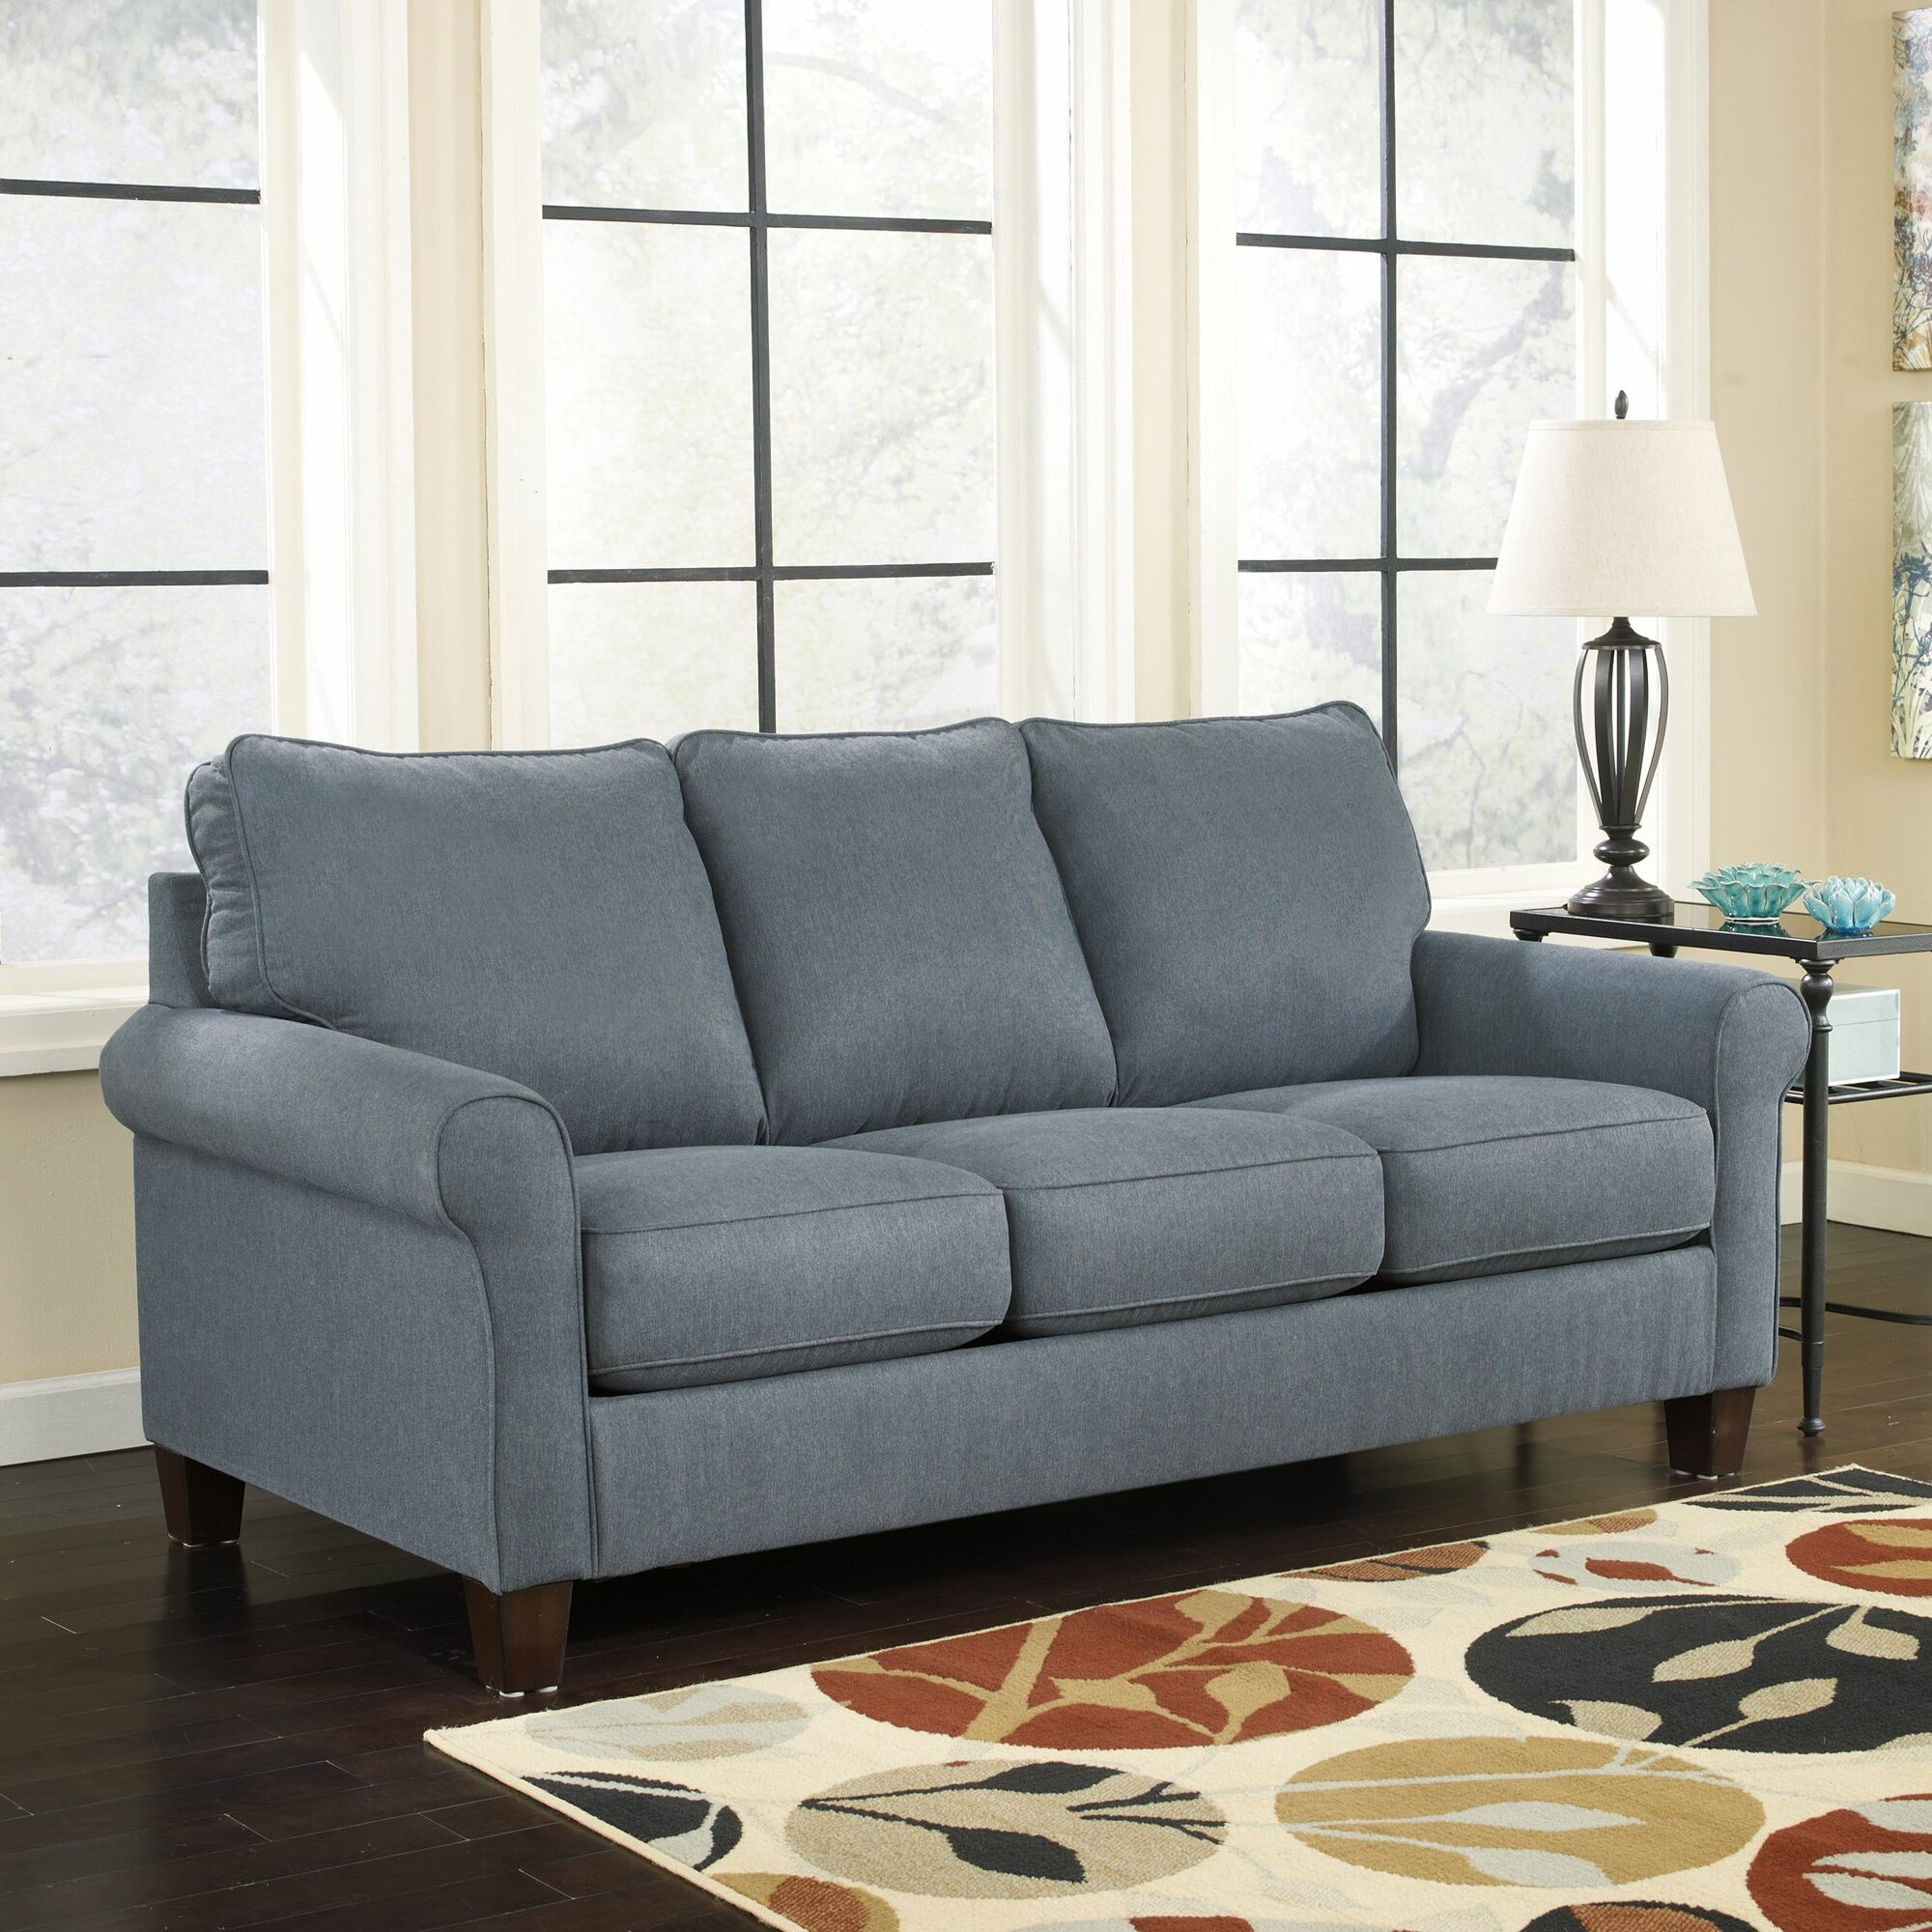 Who makes the best quality sofas thesofa for Furniture quality reviews